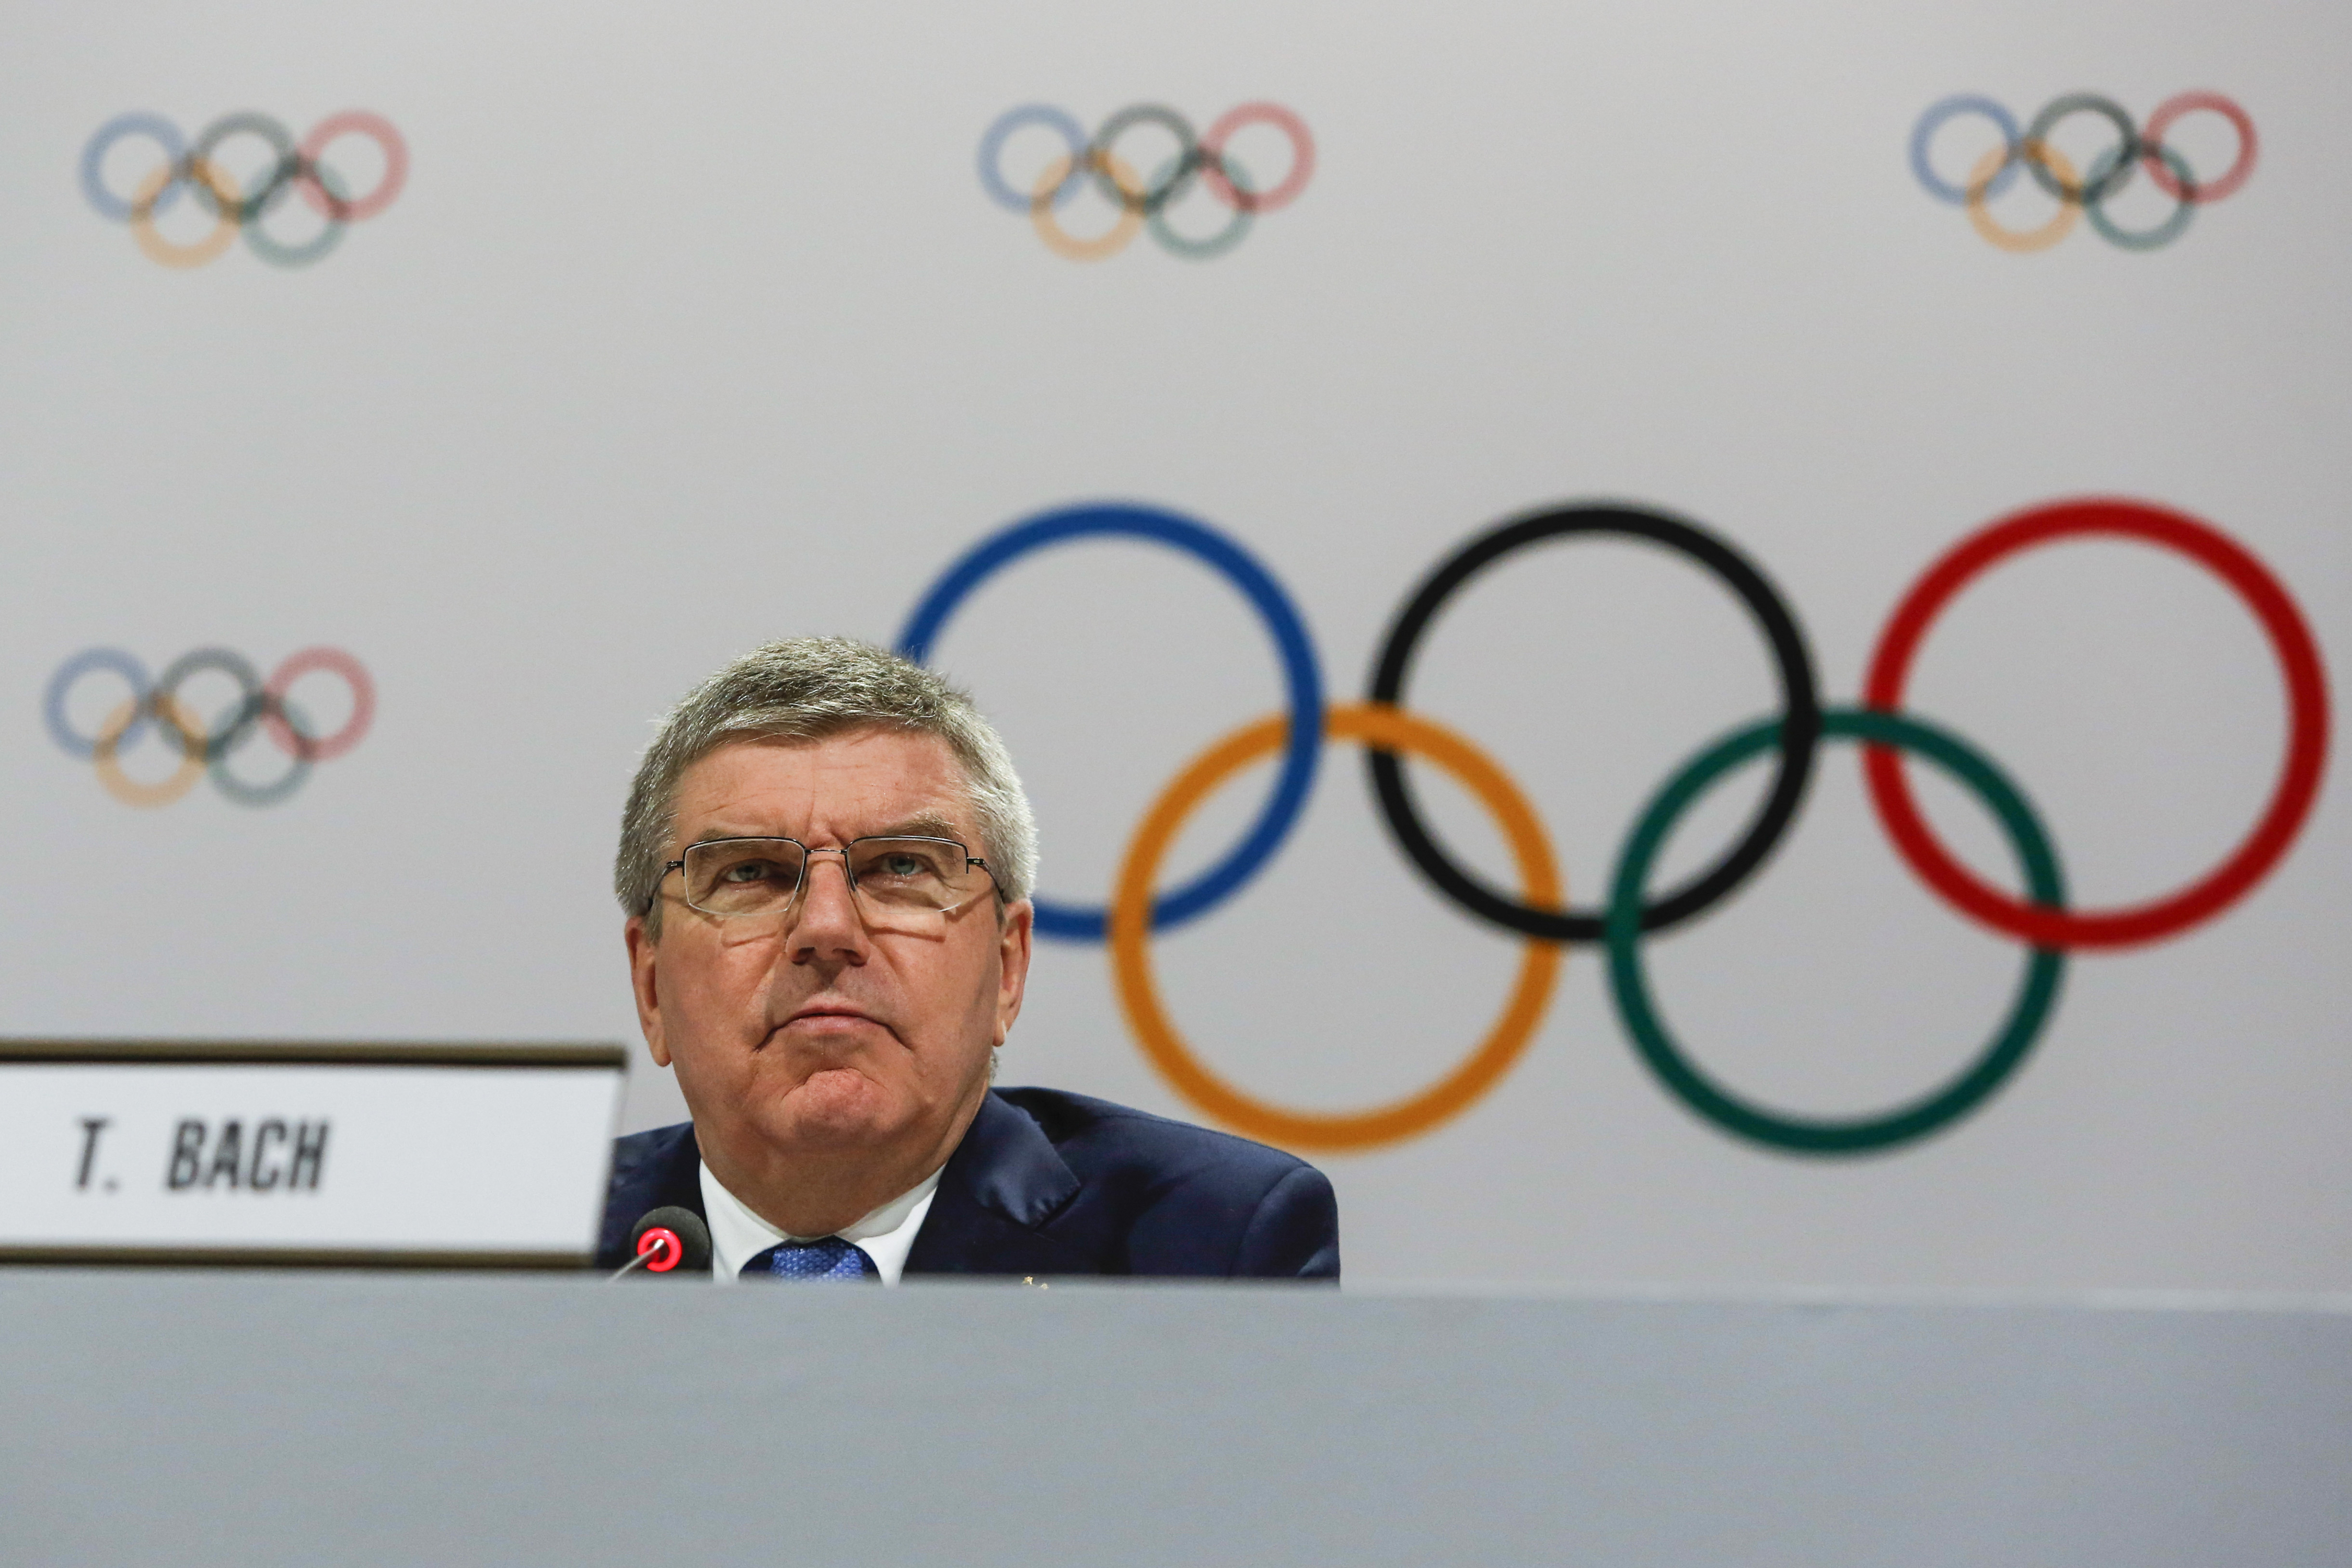 FILE- In this Monday, Aug. 3, 2015 file photo, IOC President Thomas Bach speaks at a press conference after the 128th IOC session in Kuala Lumpur, Malaysia. Bach said Wednesday May 18, 2016 entire sports federations could be suspended if allegations of st